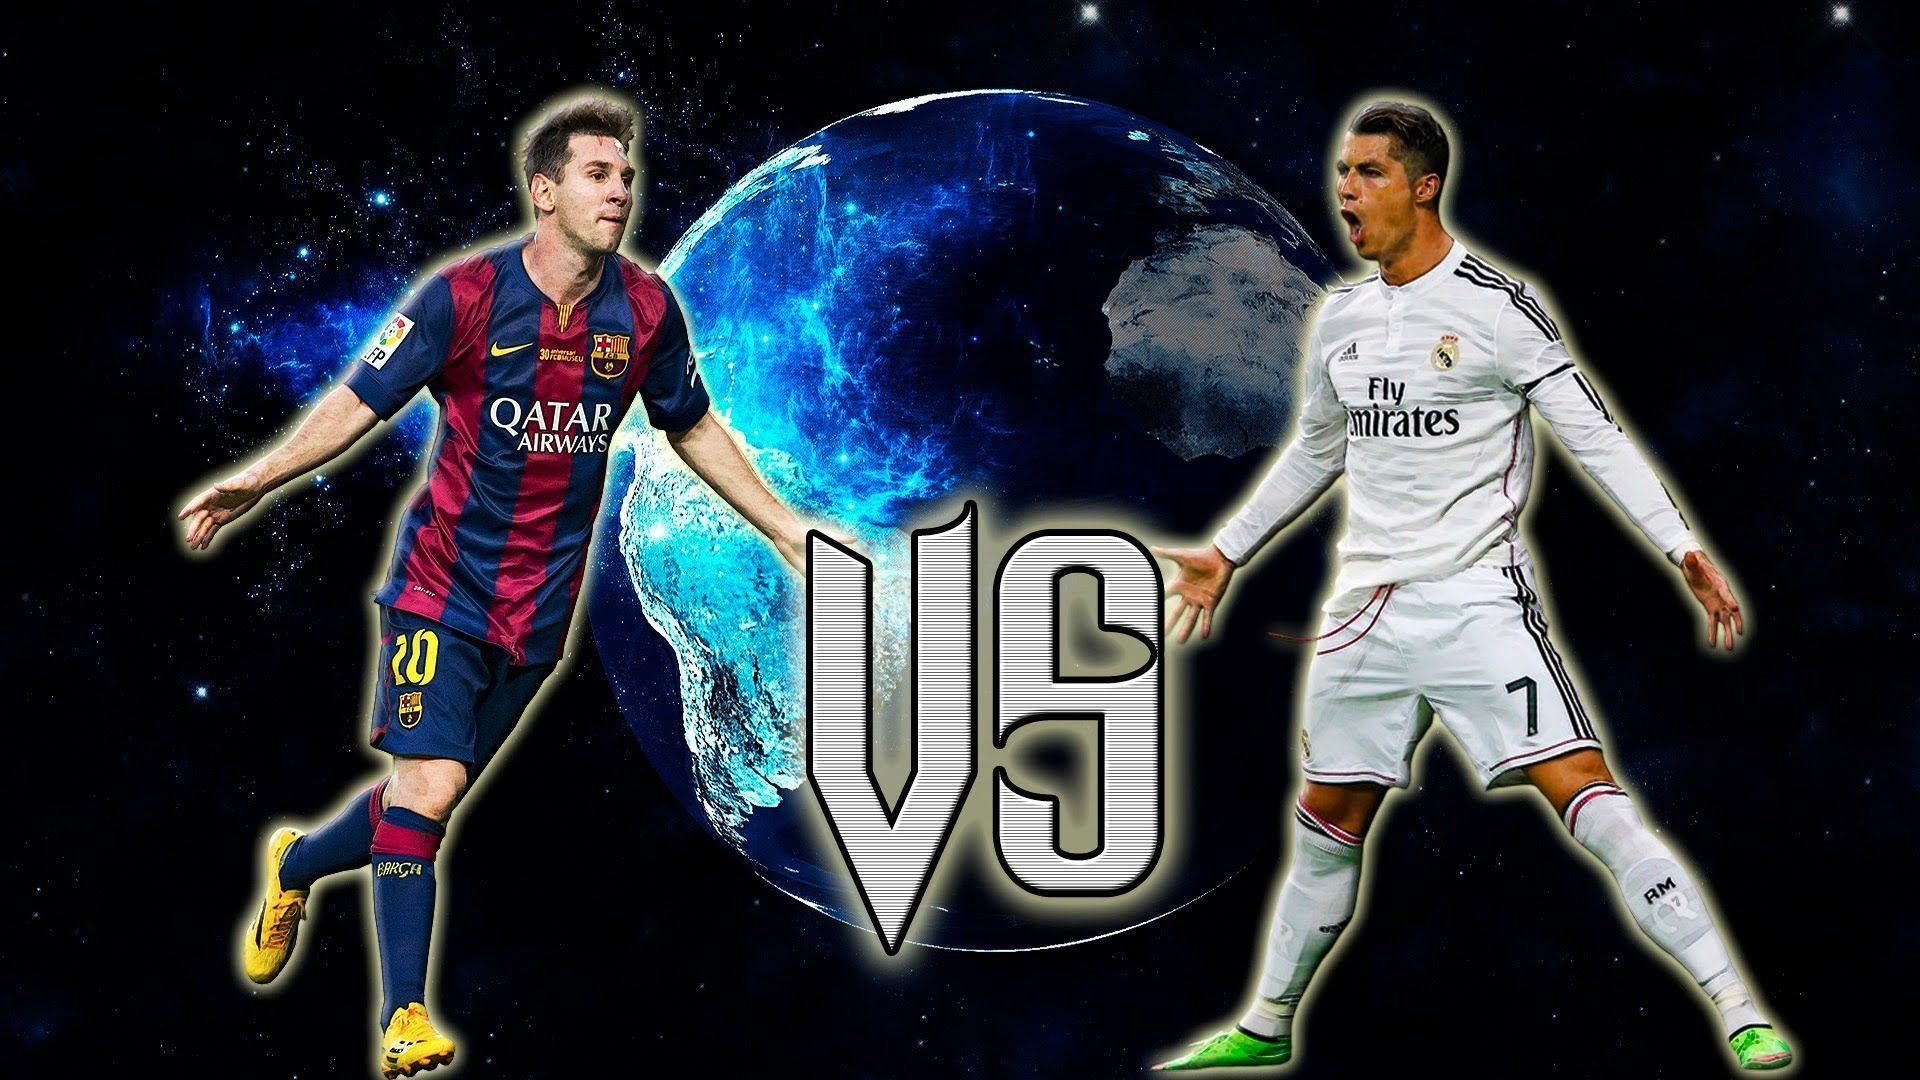 lionel messi with Cristiano Ronaldo Vs Lionel Messi 2016 Wallpaper on Barcelona Star Ivan Rakitic Not Moving Manchester United Claims Agent besides Baby Girl Shower Clipart 526 in addition Cristiano Ronaldo Vs Lionel Messi 2016 Wallpaper further Thiago Messi Mateo Messi Family Copa Del Rey Lionel Antonella Roccuzzo Partner Wife as well Report No More Droughts As Met Dept To Stop Using The Term From This Year 2163366.